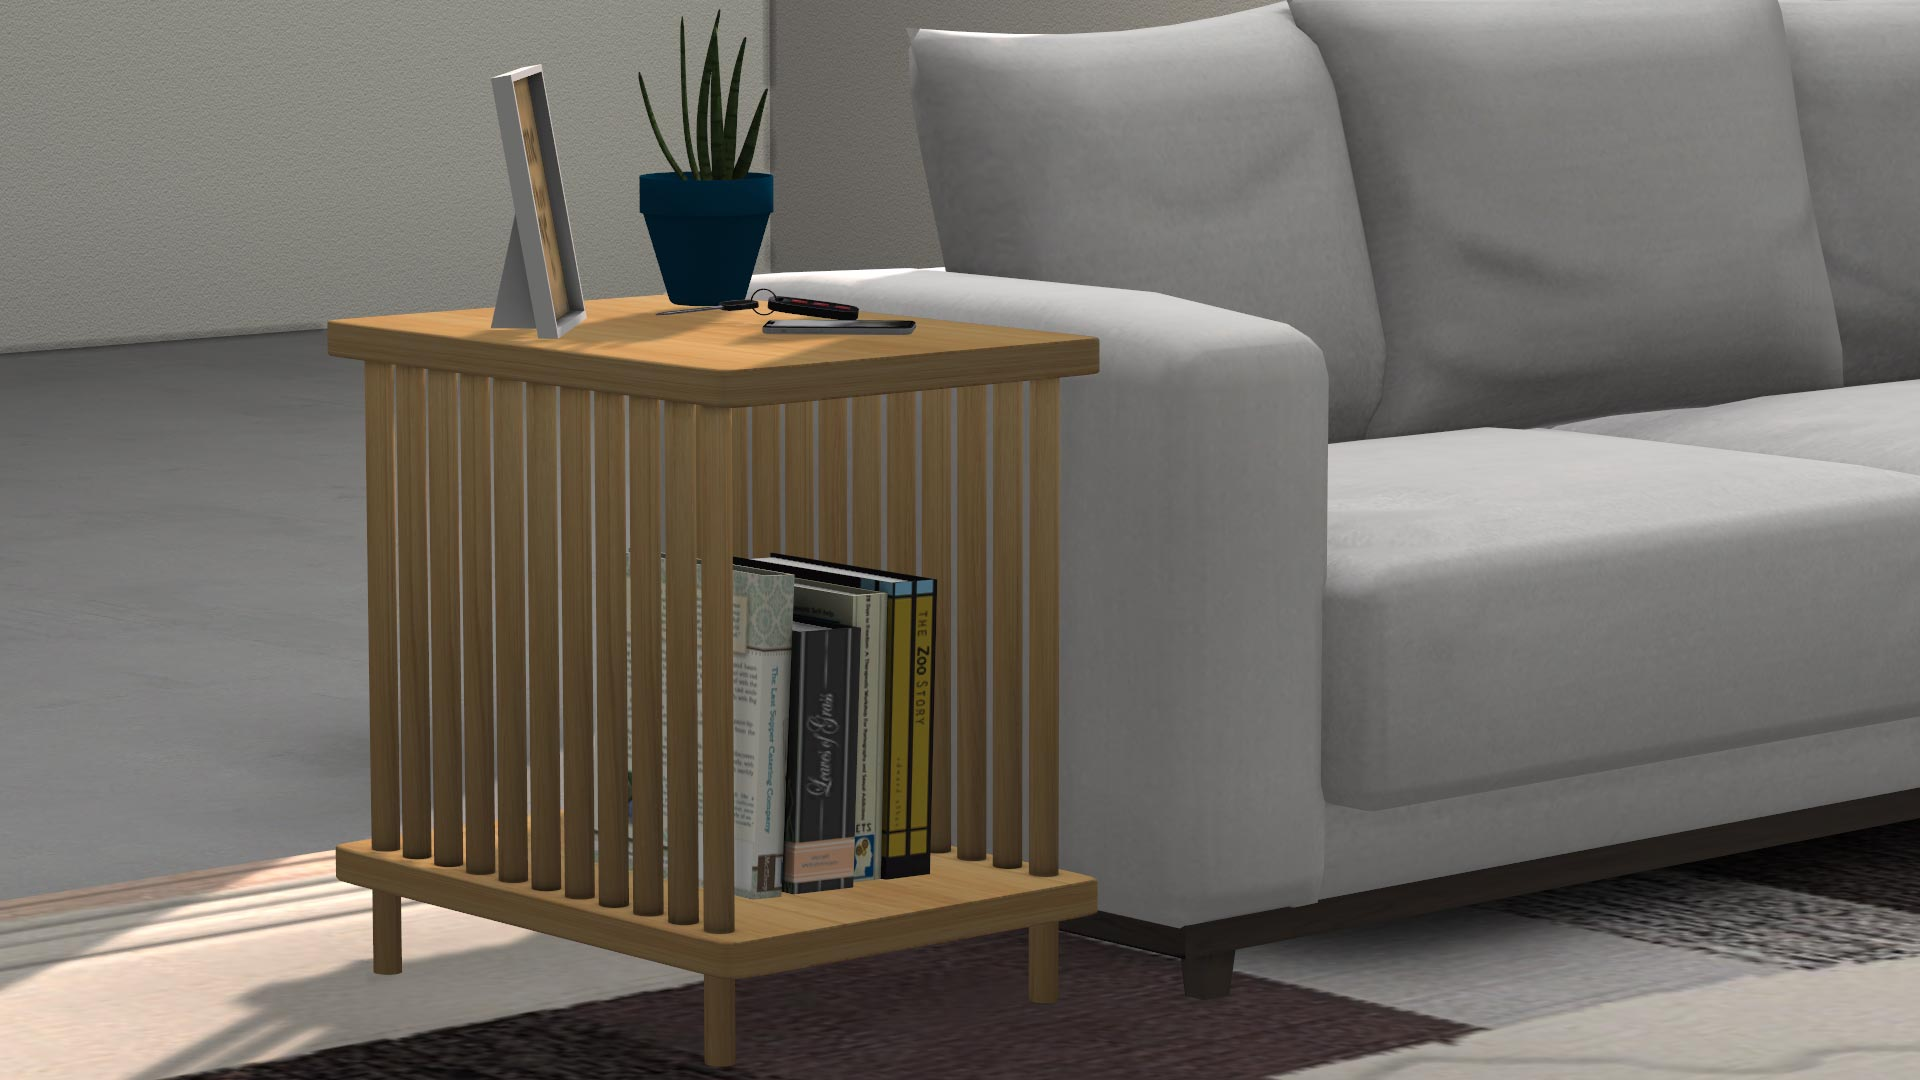 Oak End Table, high quality sims 4 cc, sunkissedlilacs, free sims 4 furniture, sims 4 custom content,